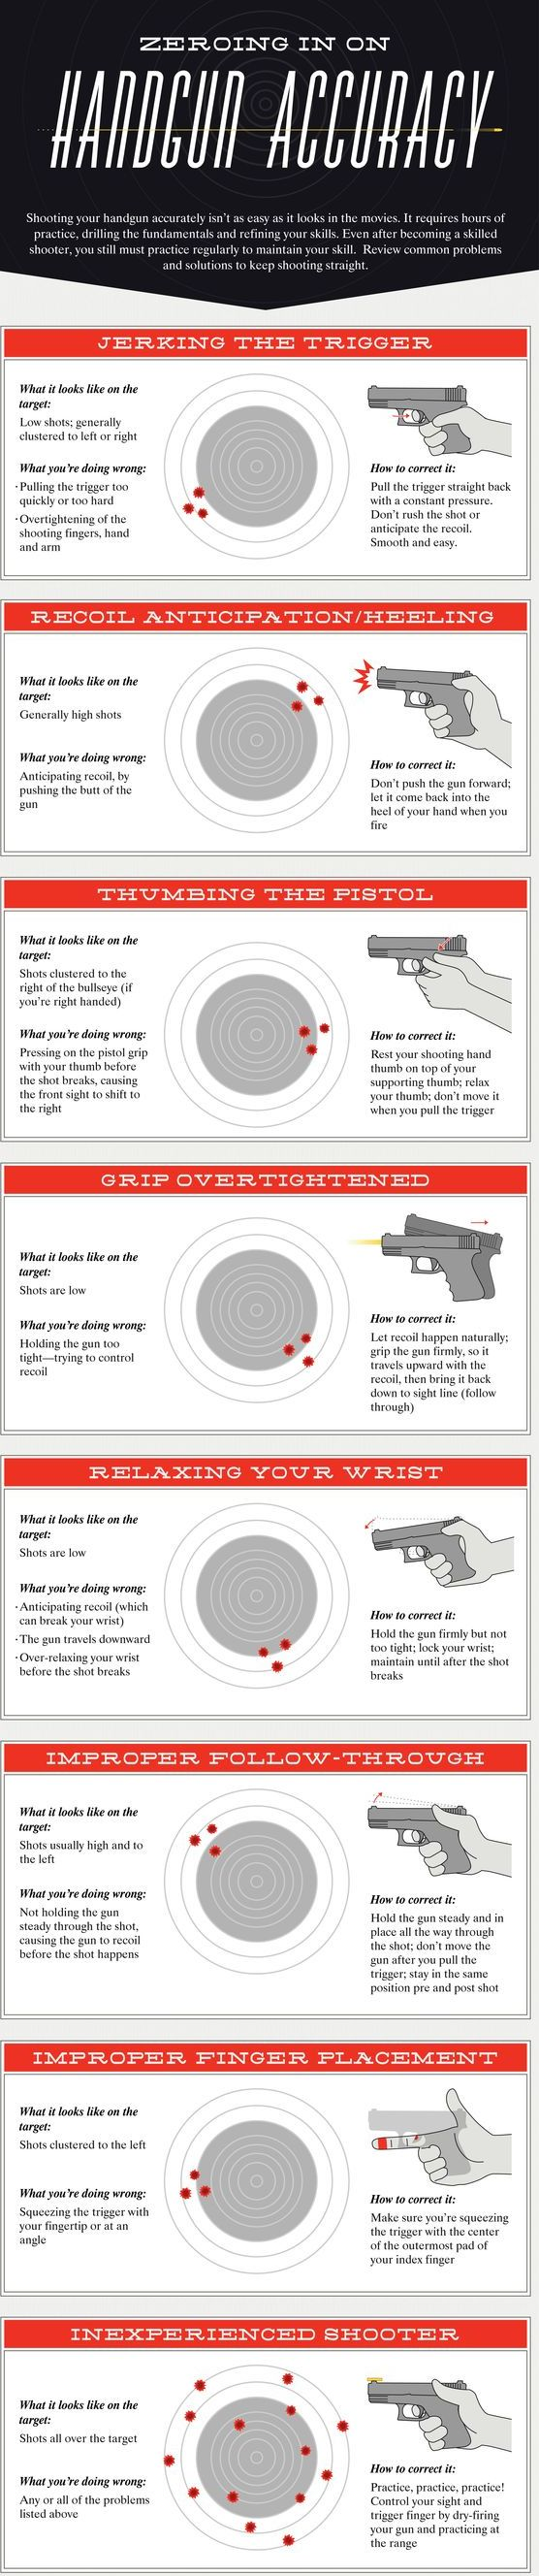 Go over this infographic to learn how to raise your handgun shot accuracy. These helpful tips will teach you how to better handle your gun.